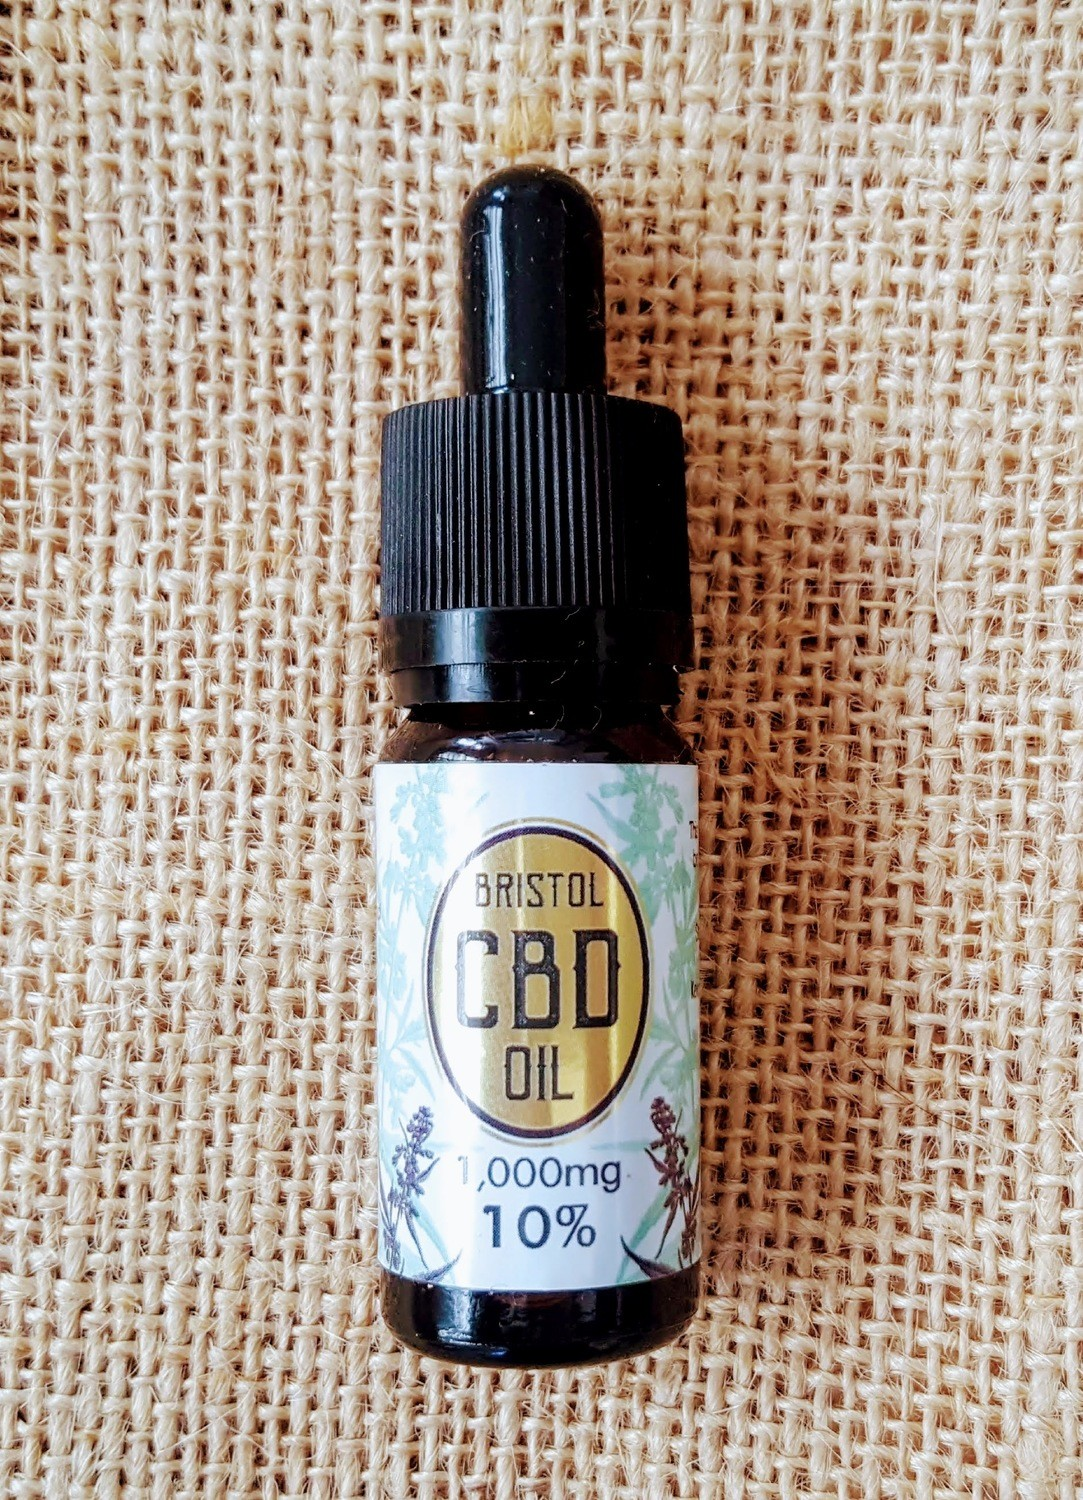 1000mg (10%) 'Gold' CBD oil 10ml dropper bottle